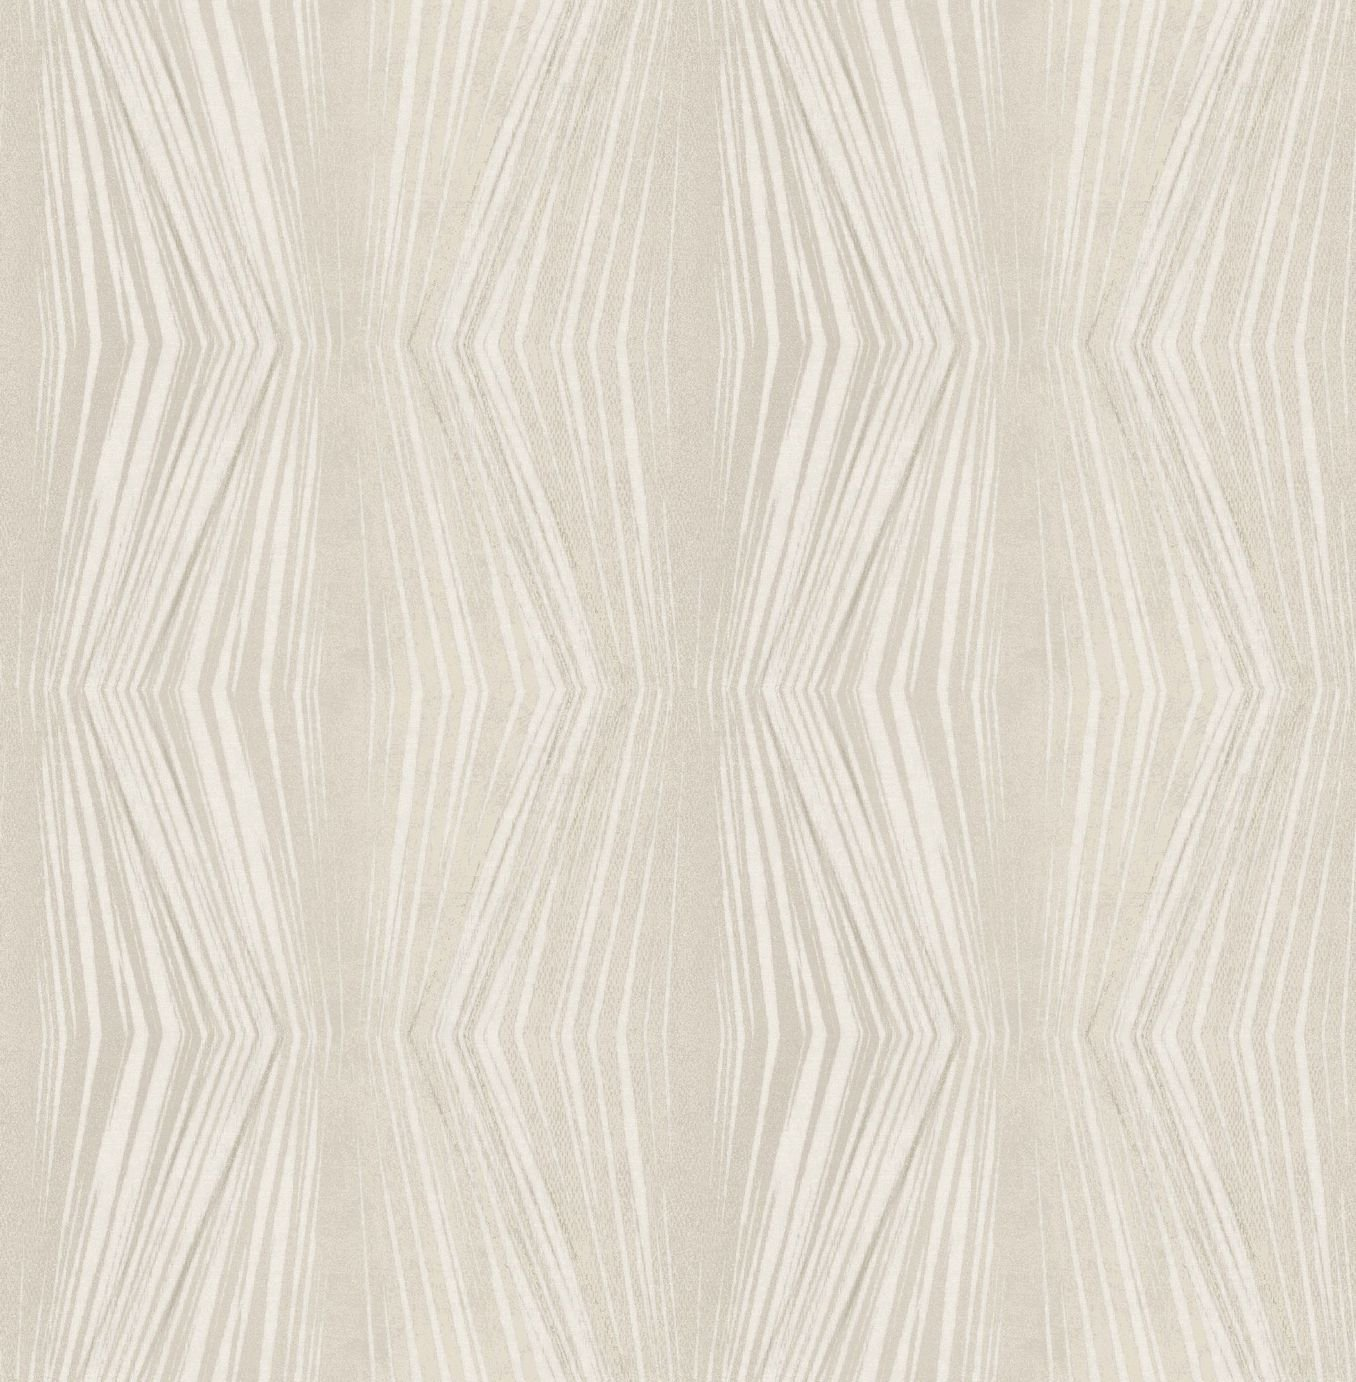 Image of Graham & Brown Boutique Vermeil Stripe Wallpaper Cream